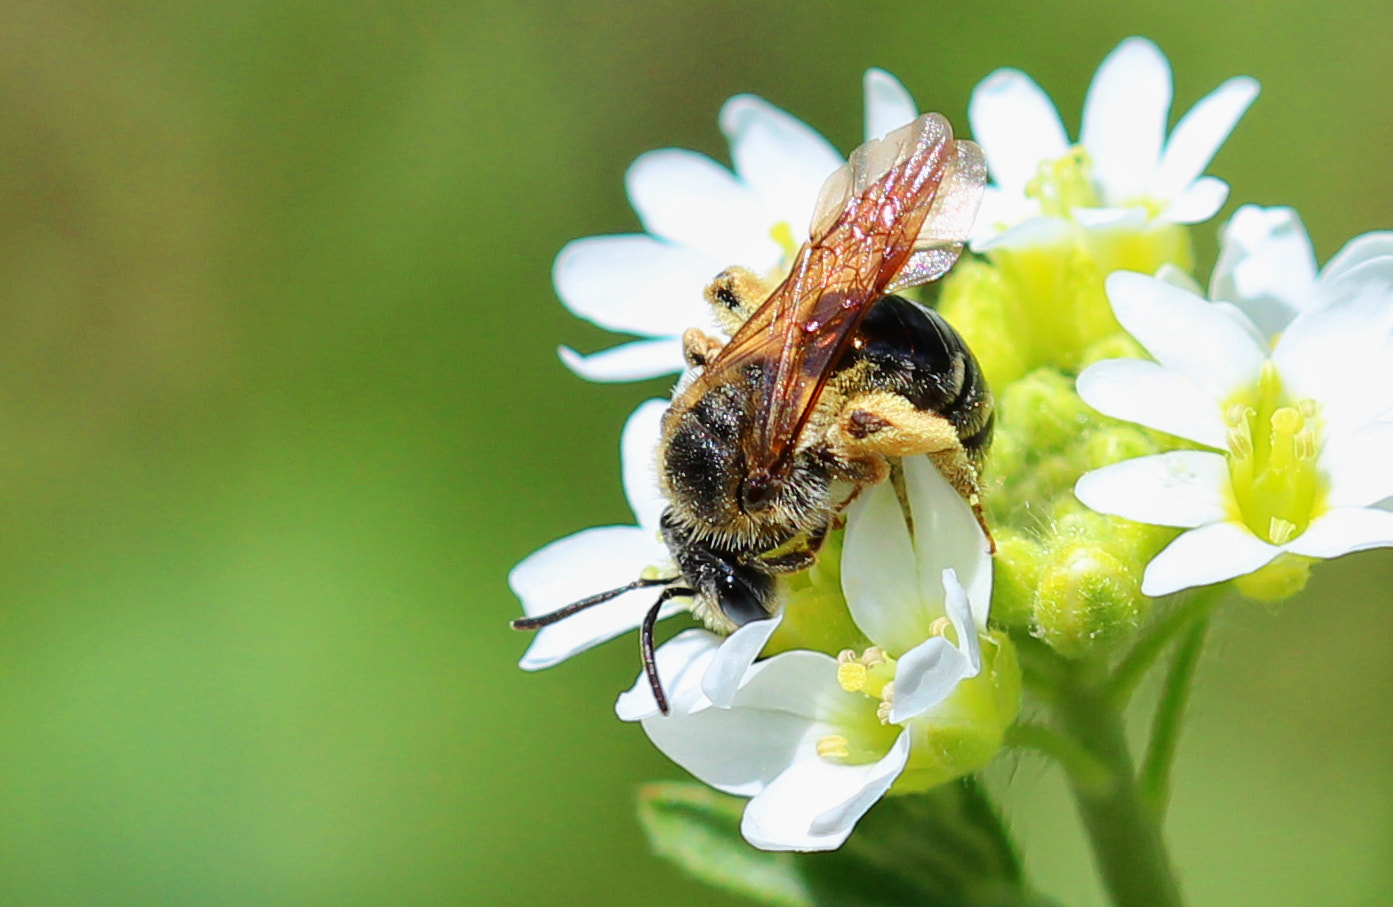 Photograph A Pollinating Affair by Tim Krause on 500px